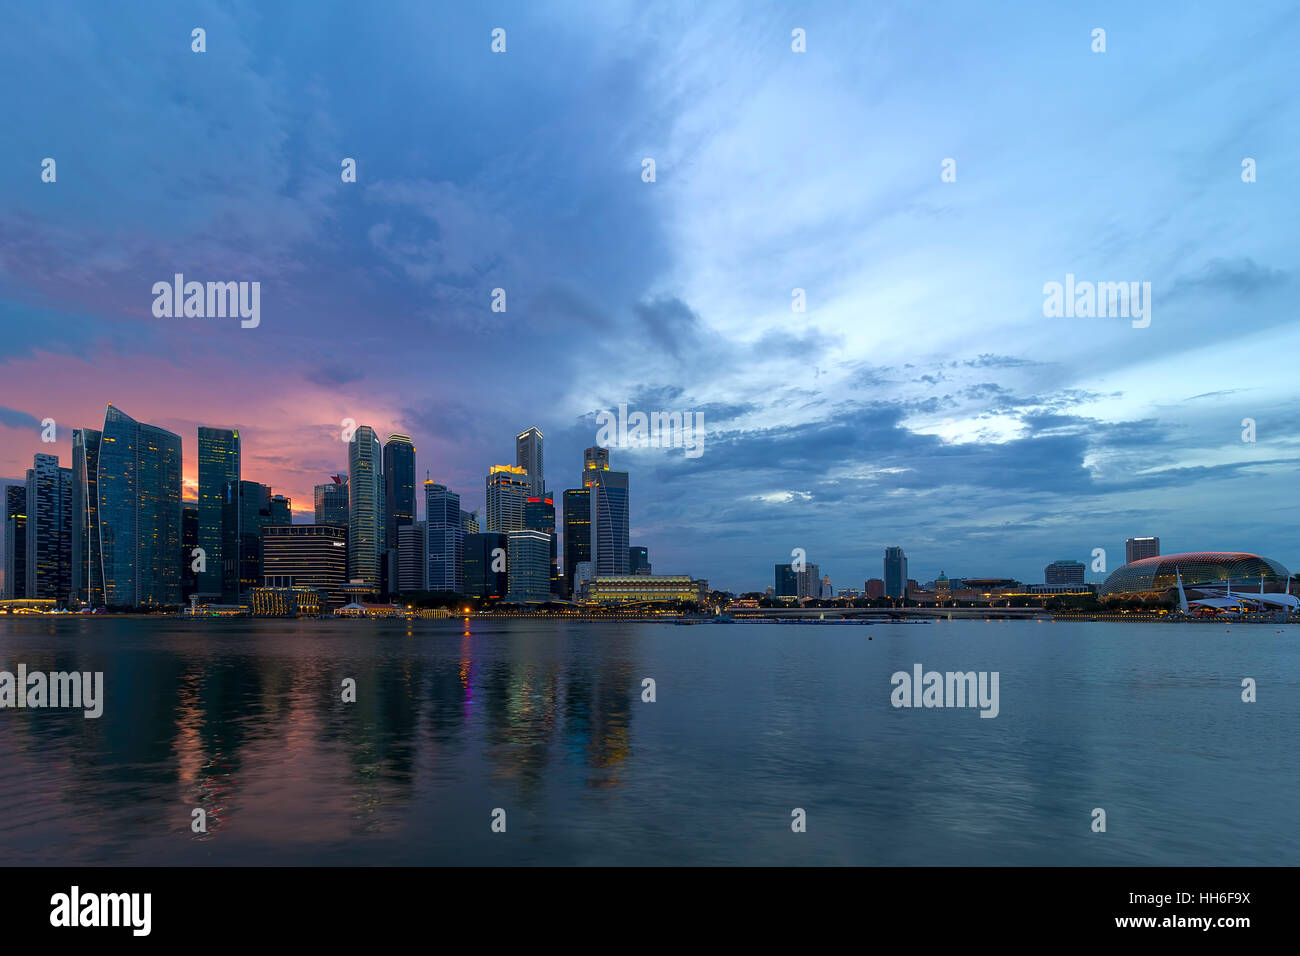 Sunset over Singapore Central Business District City Skyline by Marina Bay - Stock Image